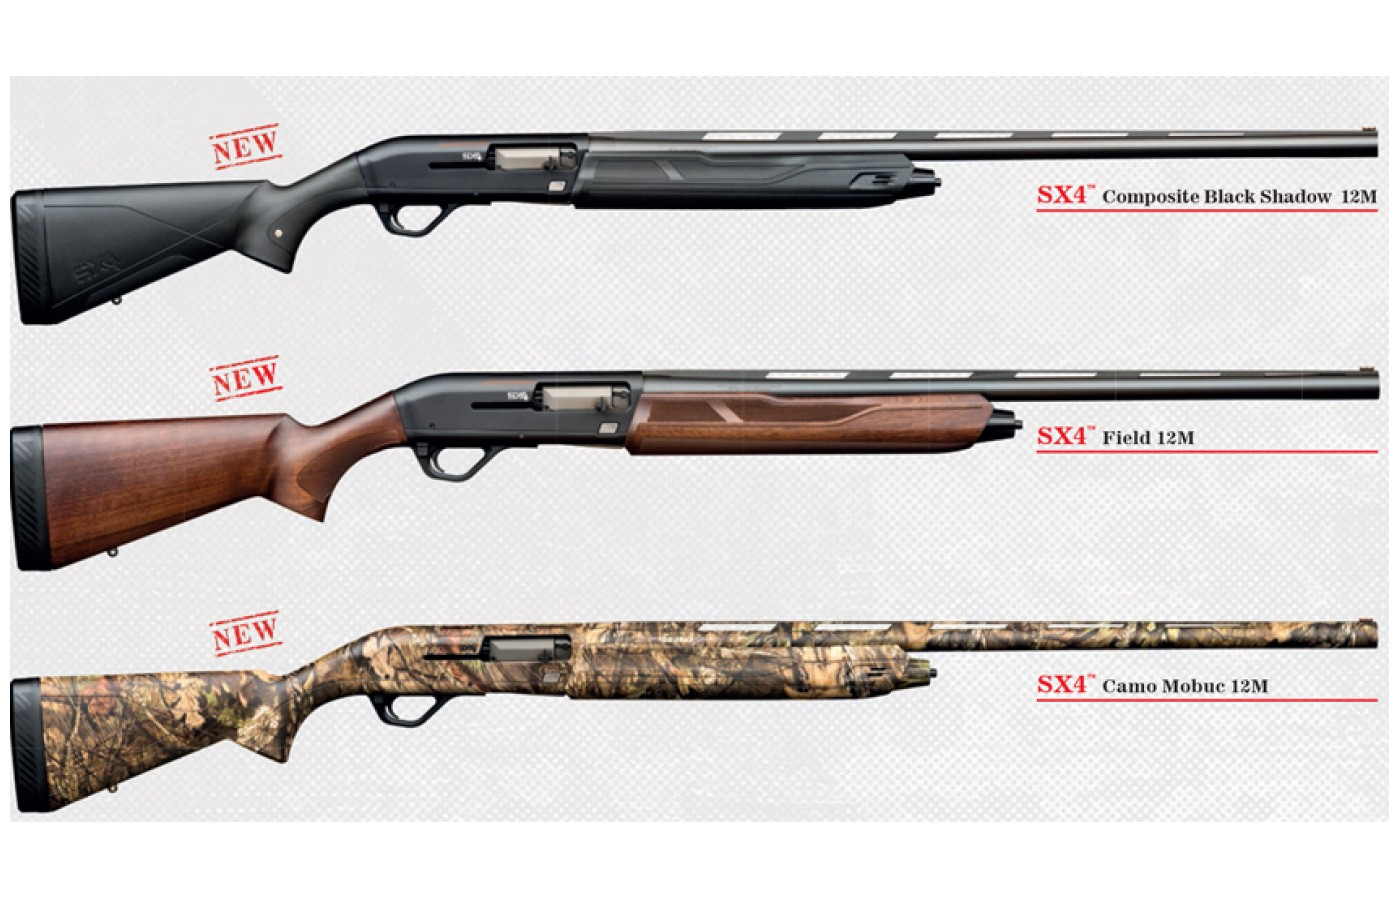 This shotgun is meant for hunting a variety of animals.